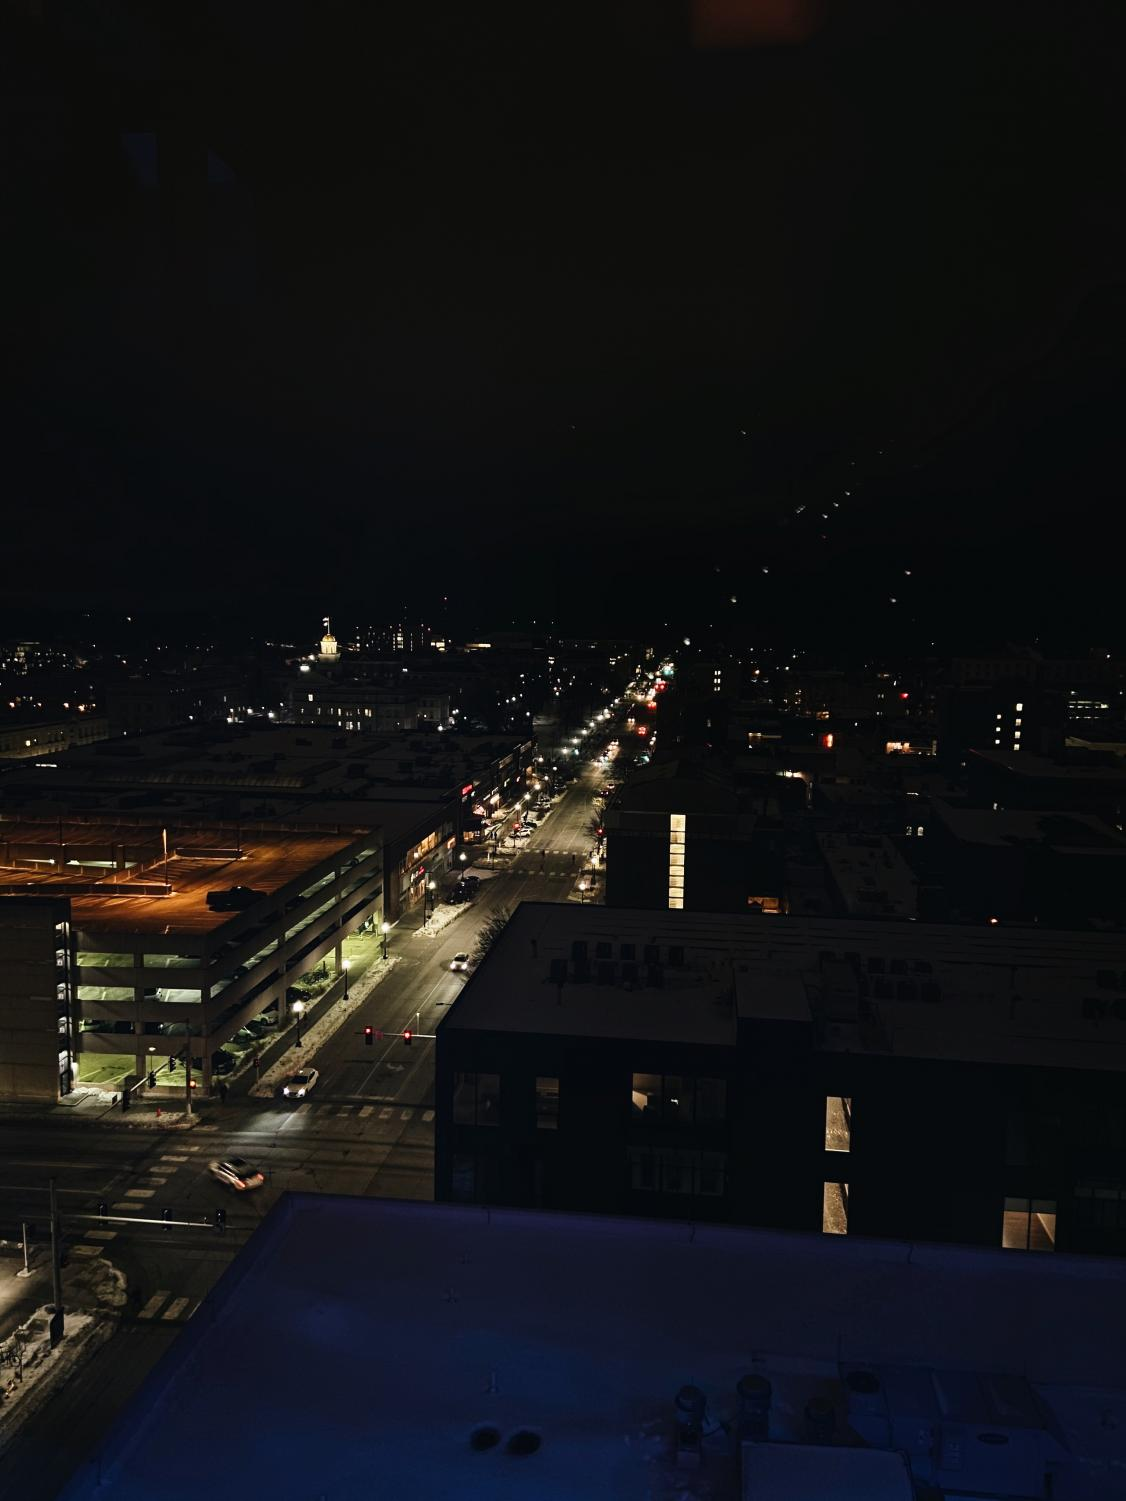 From+the+Vue+Rooftop%2C+cars+can+be+spotted+among+the+bright+lights+of+downtown+Iowa+City.+%28fast+shutter+speed%29